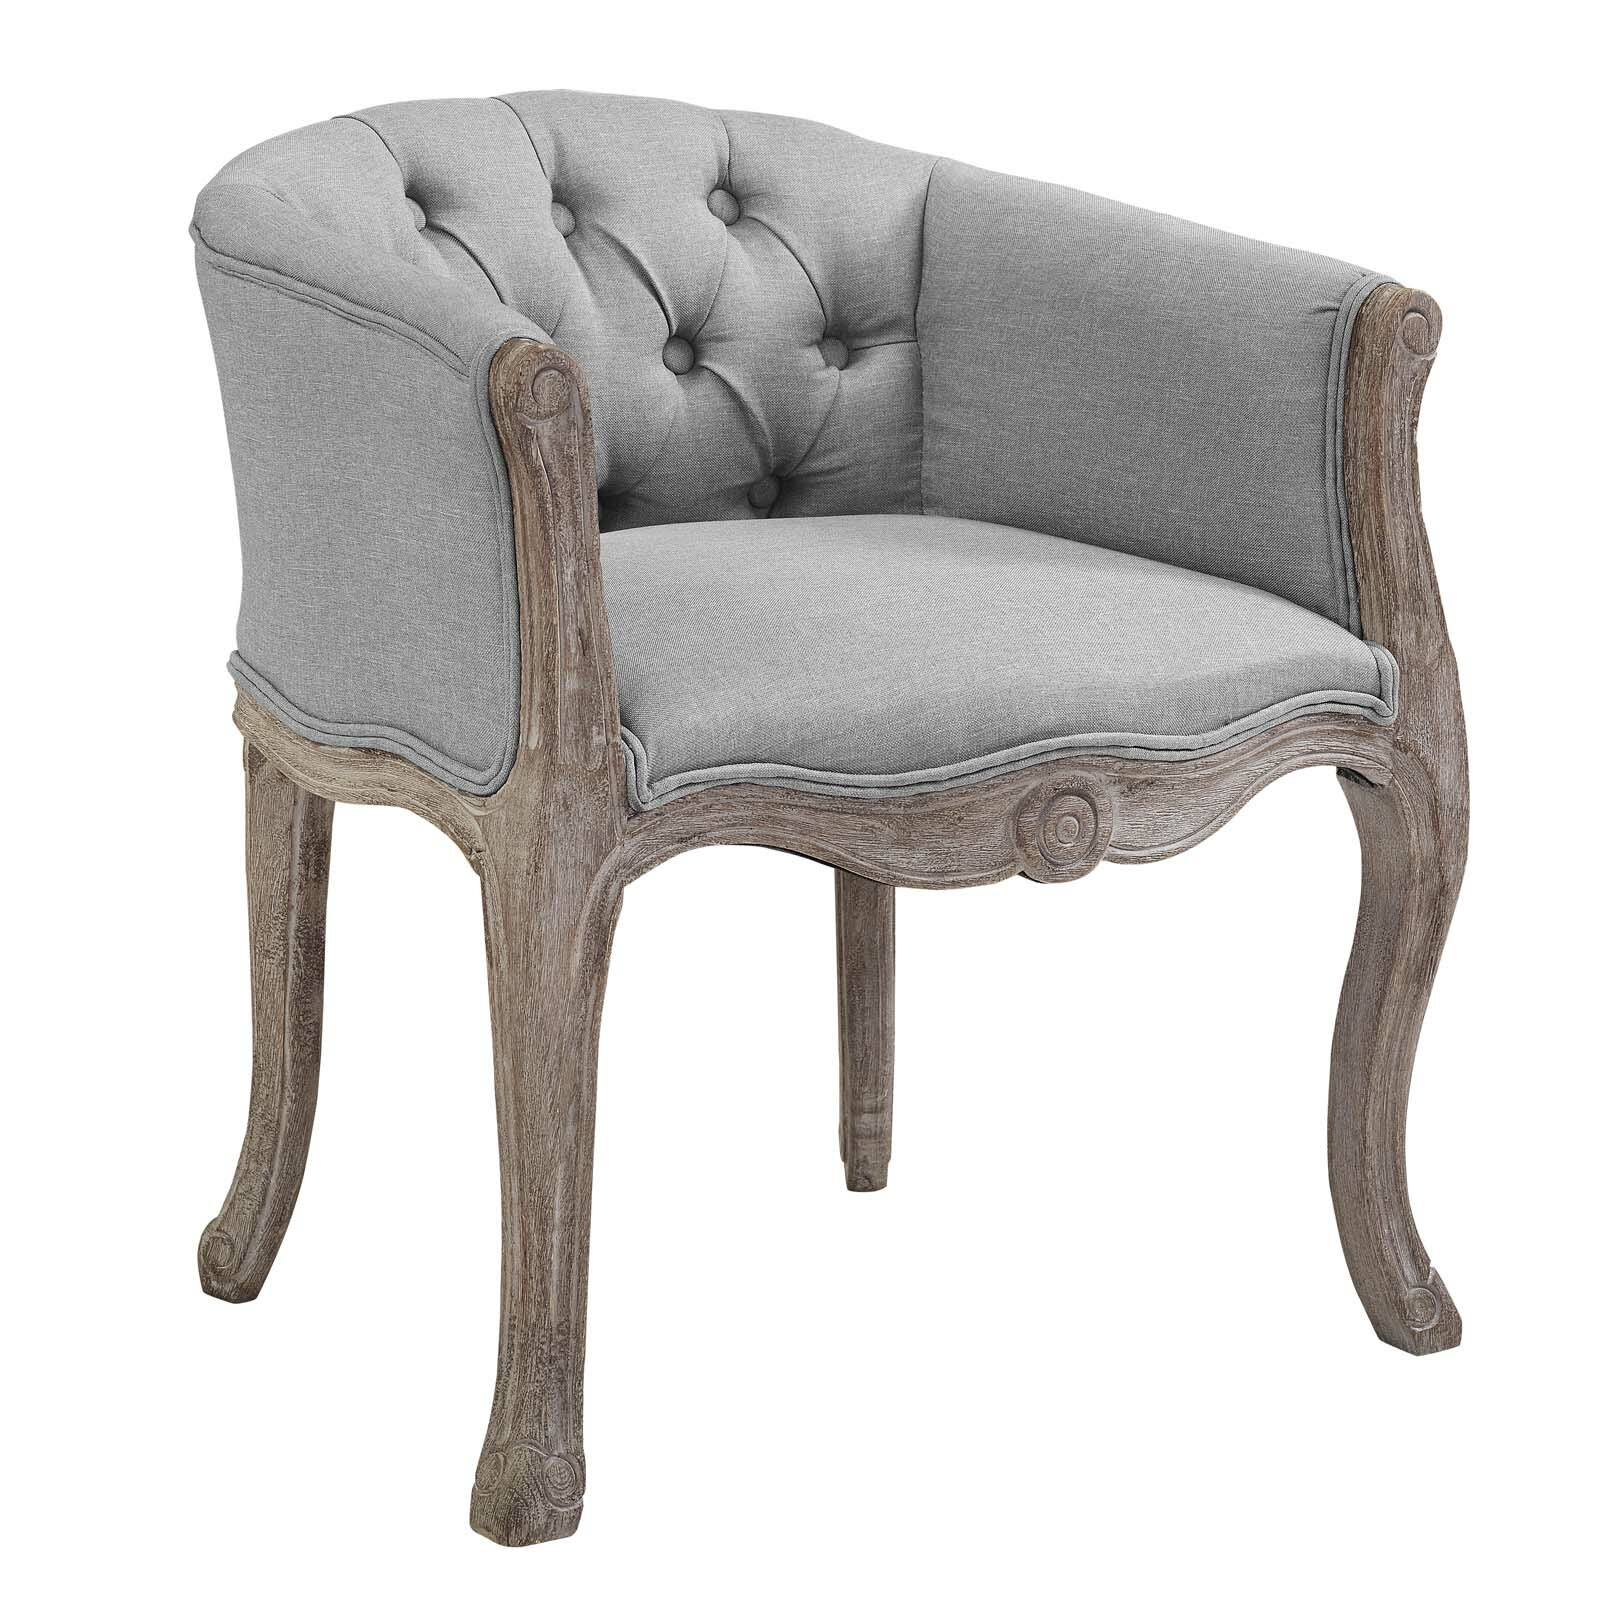 Vasques Vintage French Upholstered Dining Chair Wayfair